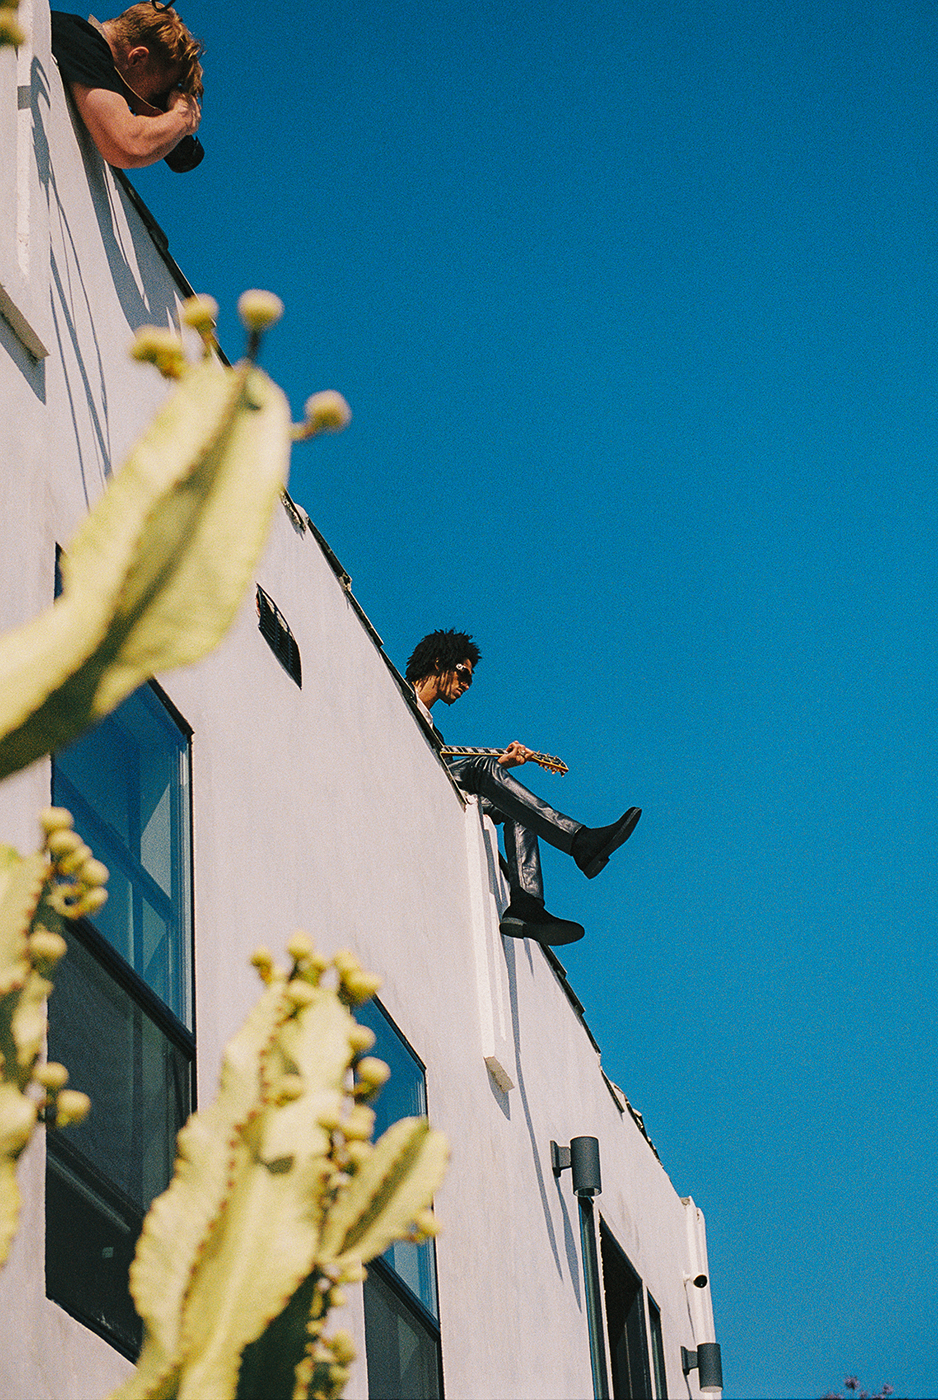 Model Jaxon Rose playing guitar on roof shot from below by Michael Julius for New Republic